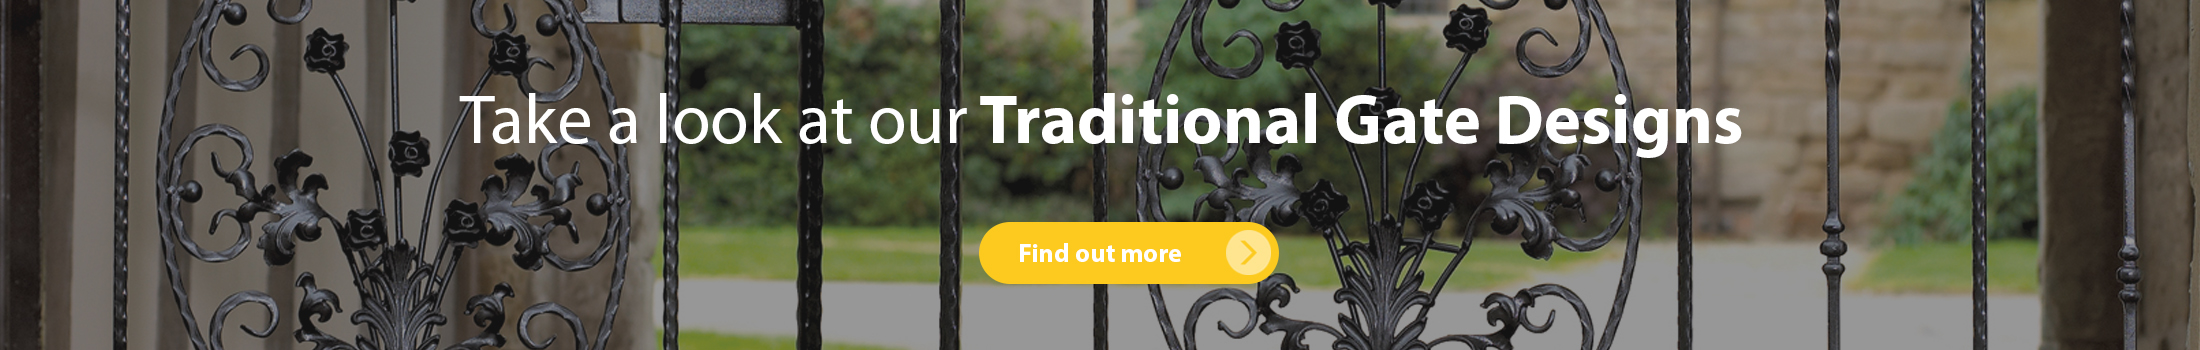 Take a look at our traditional garden gate designs